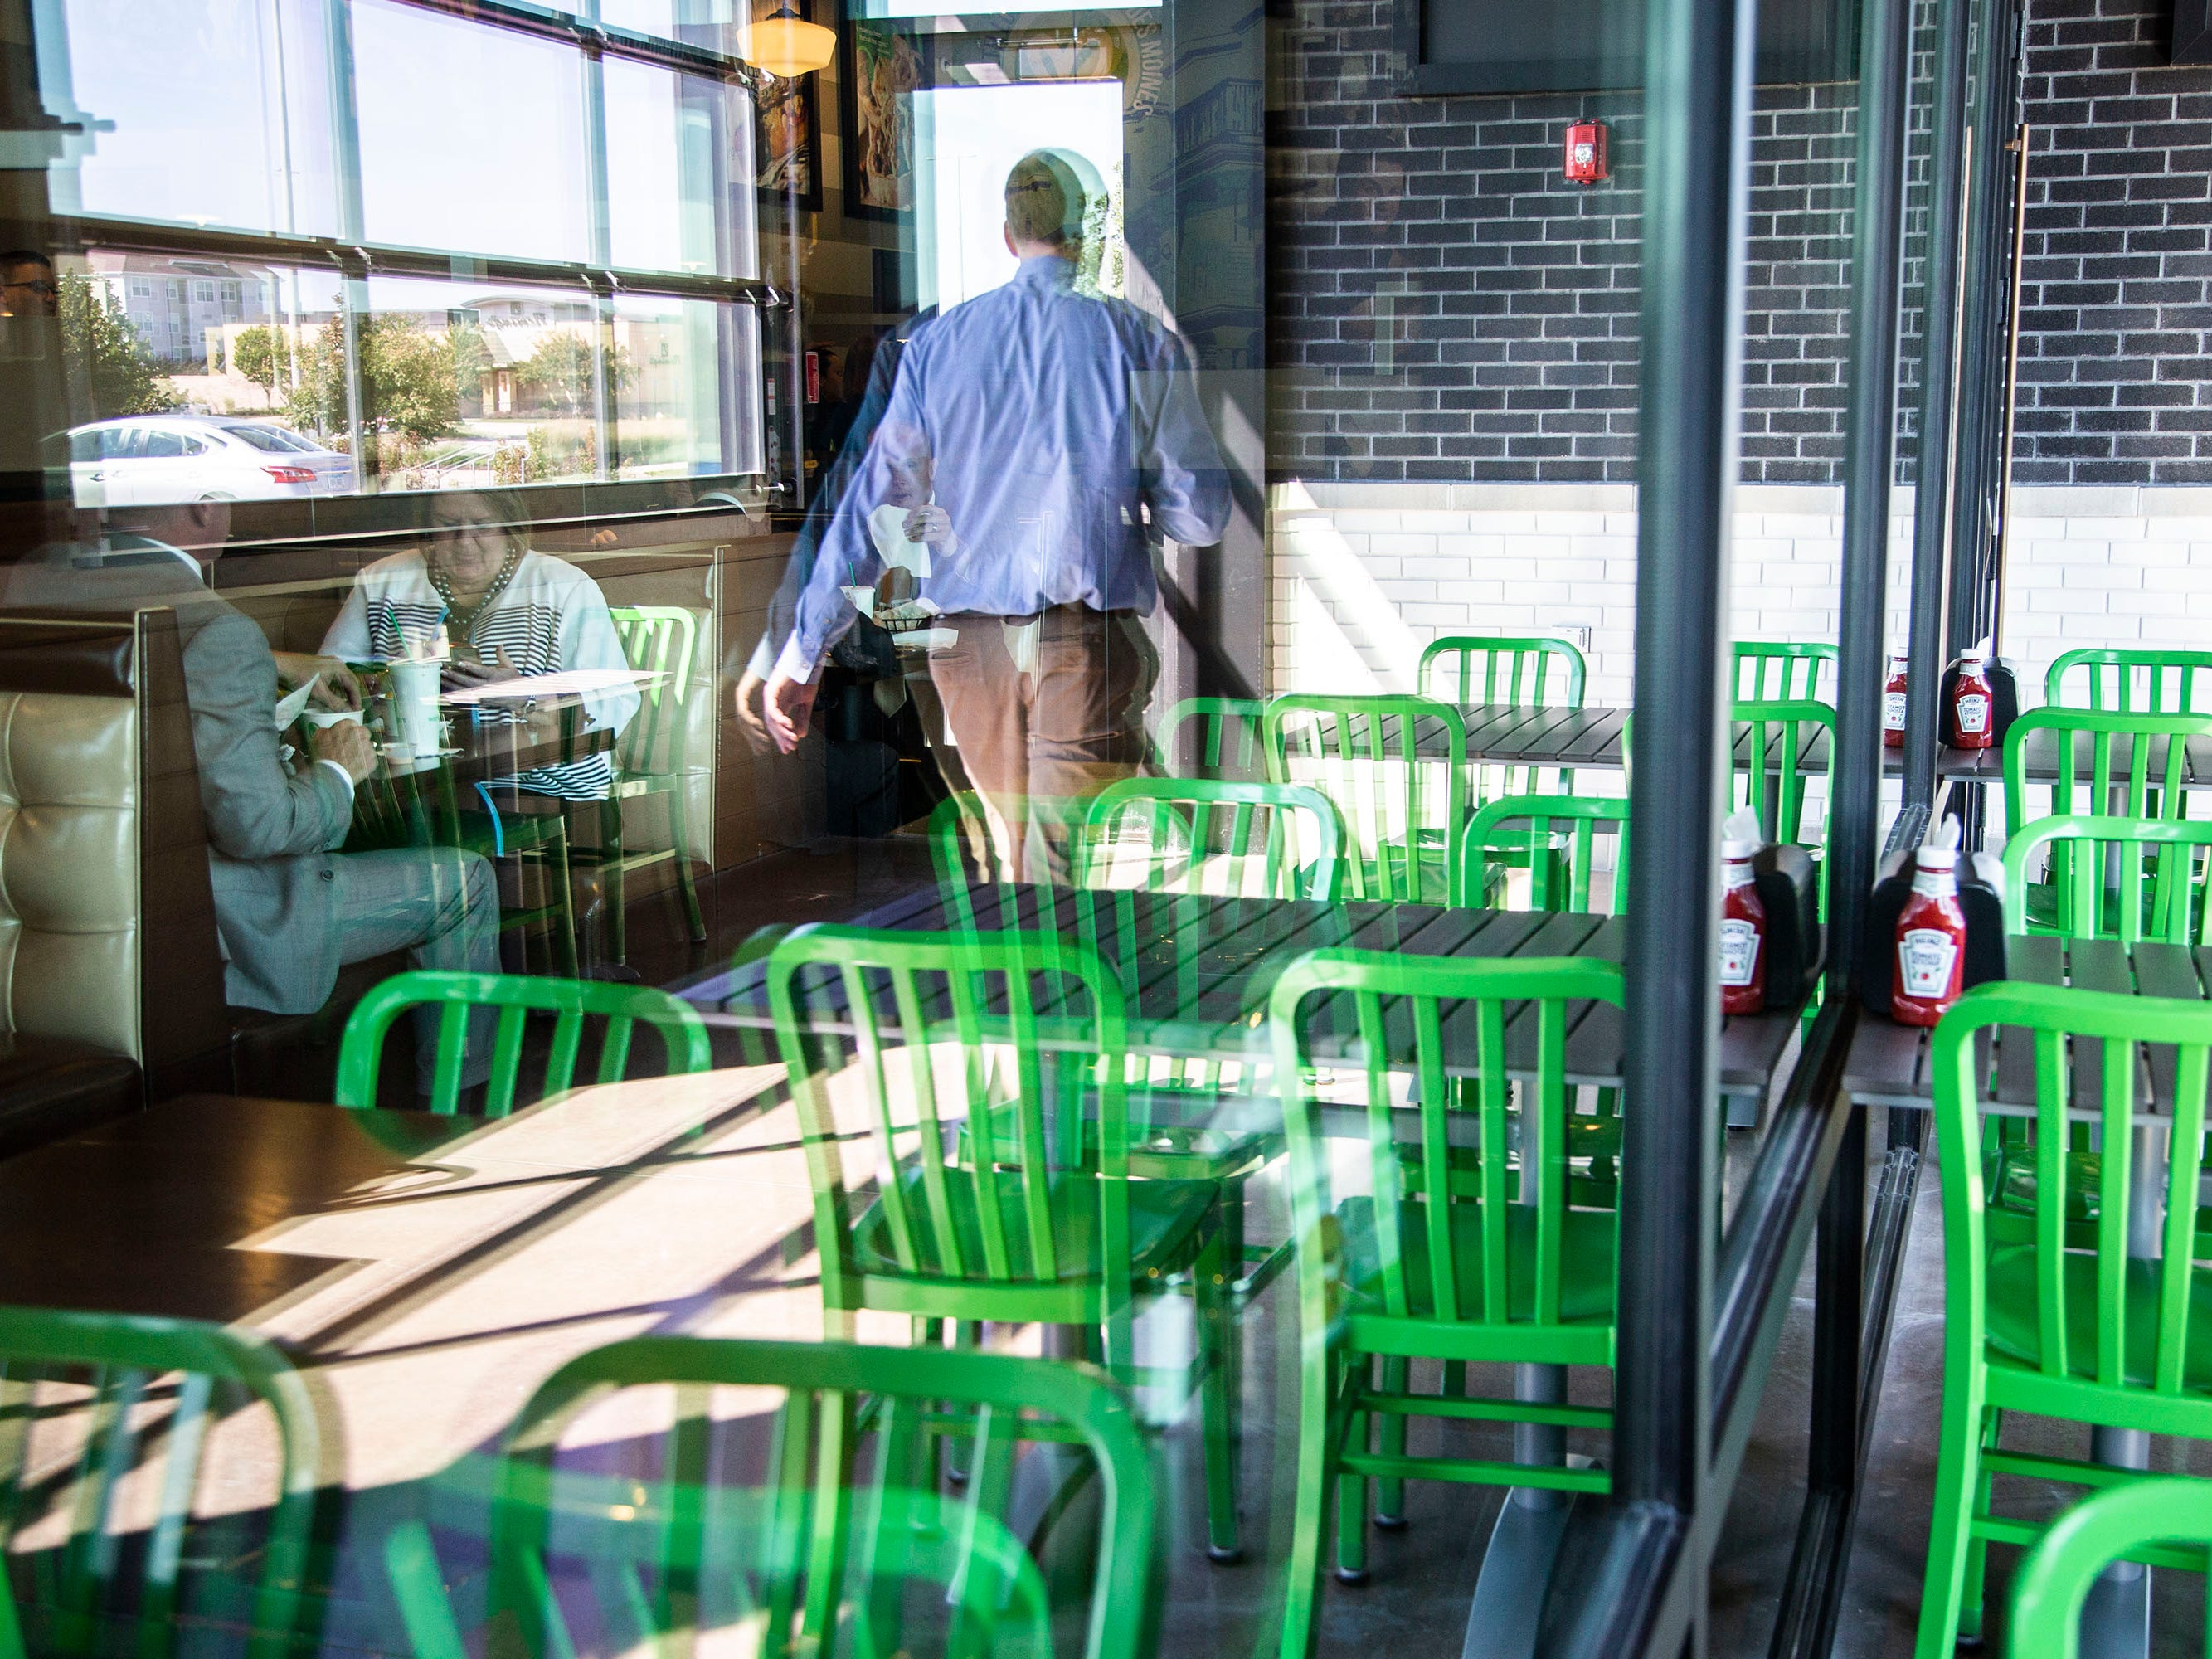 Guests dine on burgers and other food from Iowa's first Wahlburgers restaurant before it's official opening on Monday, Sept. 10, 2018, in the Jordan Creek Town Center in West Des Moines.